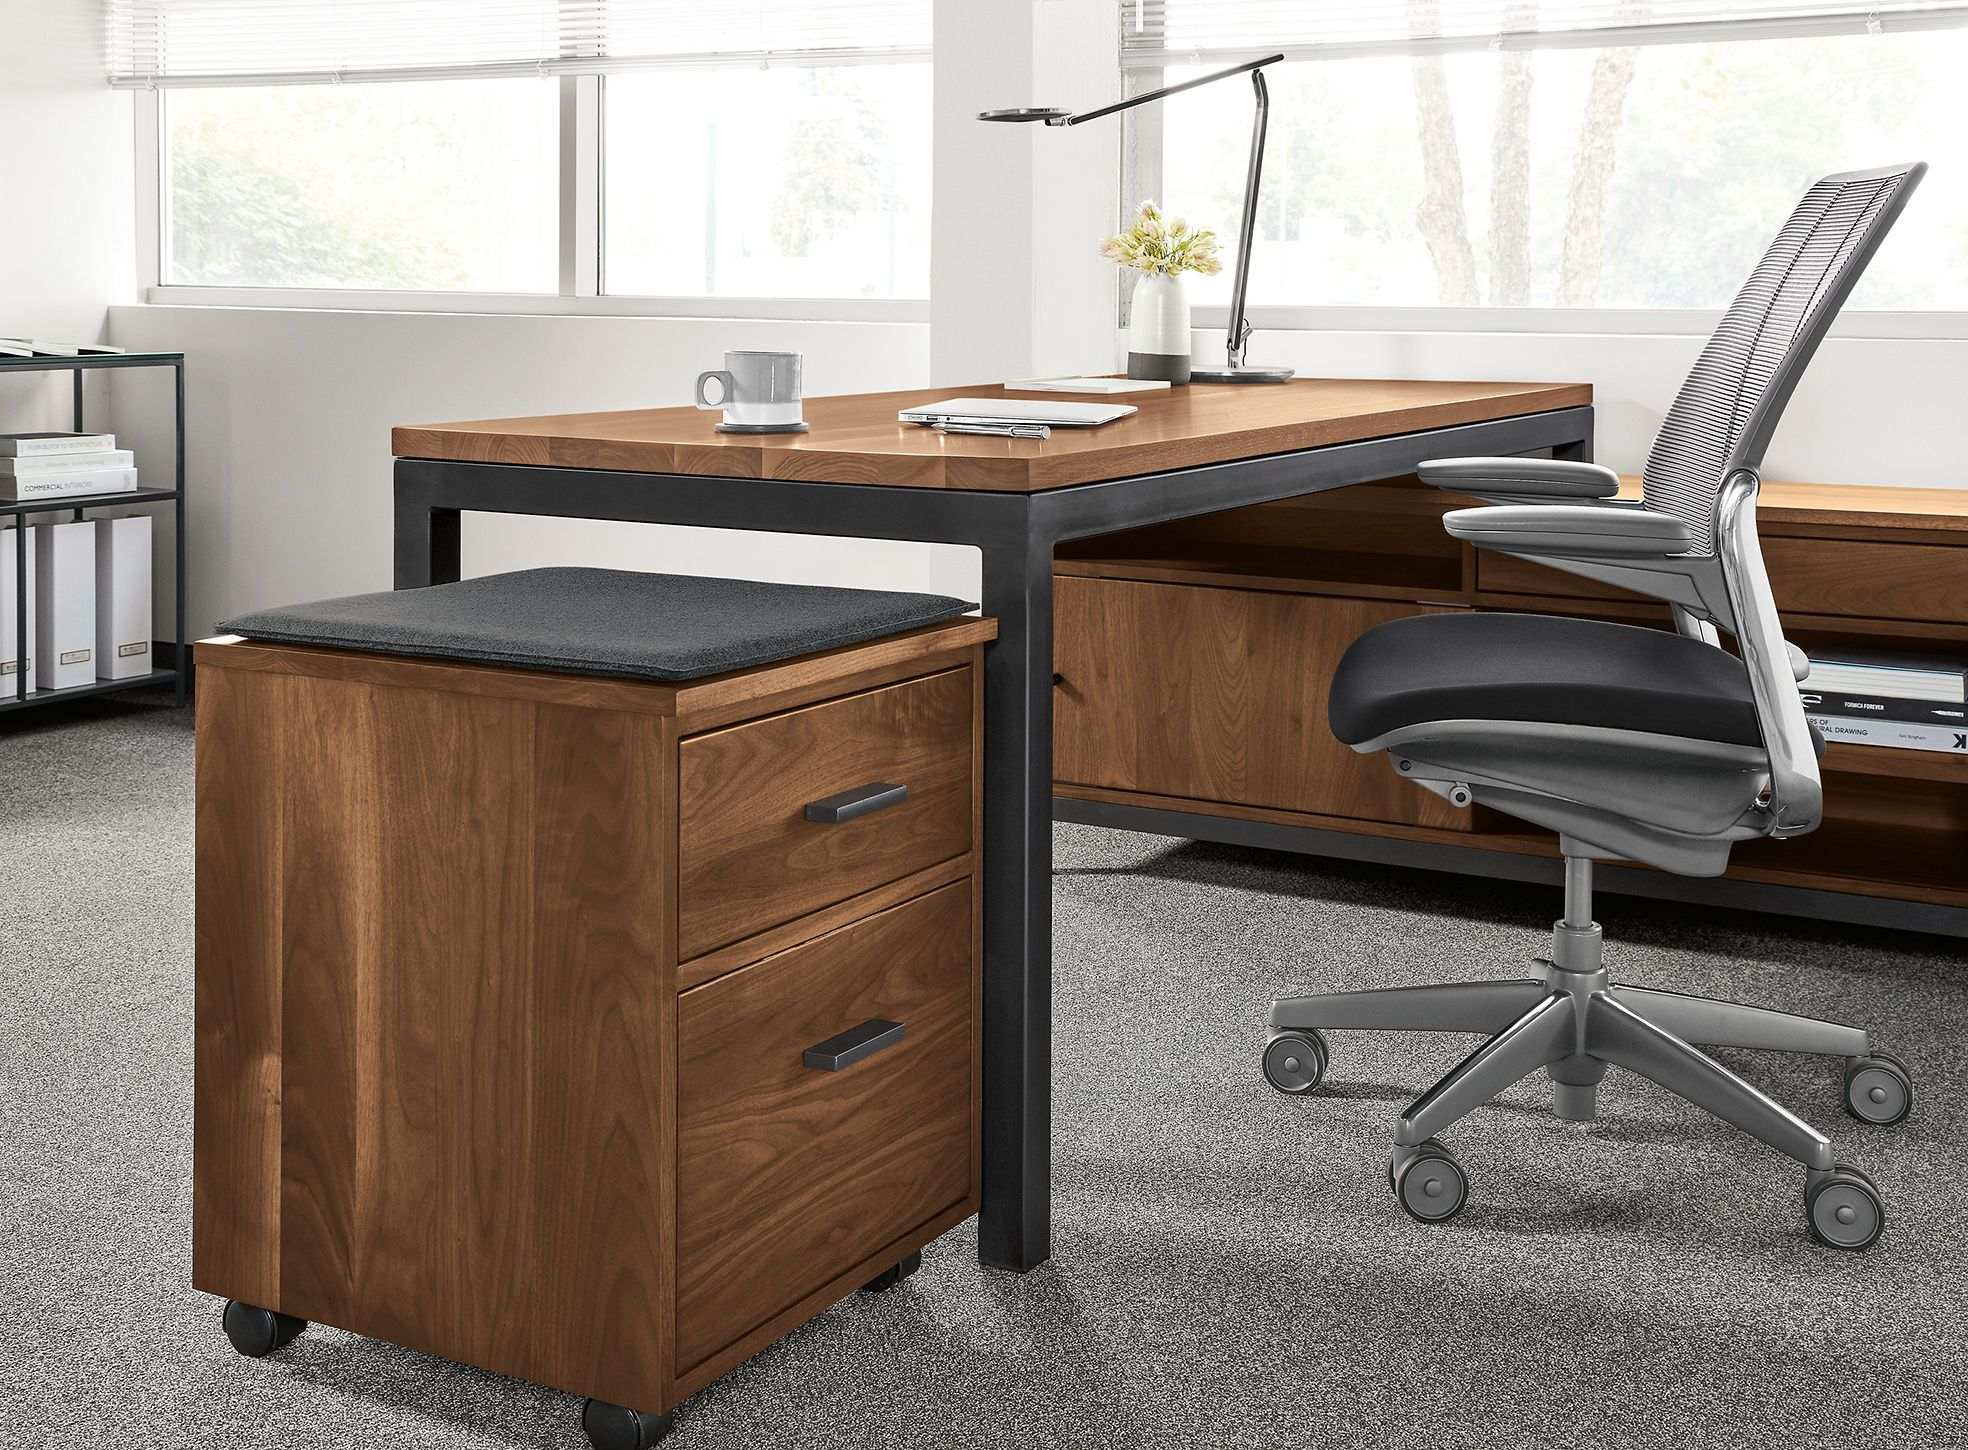 Modern Office Furniture - Office - Room & Board | Home ...